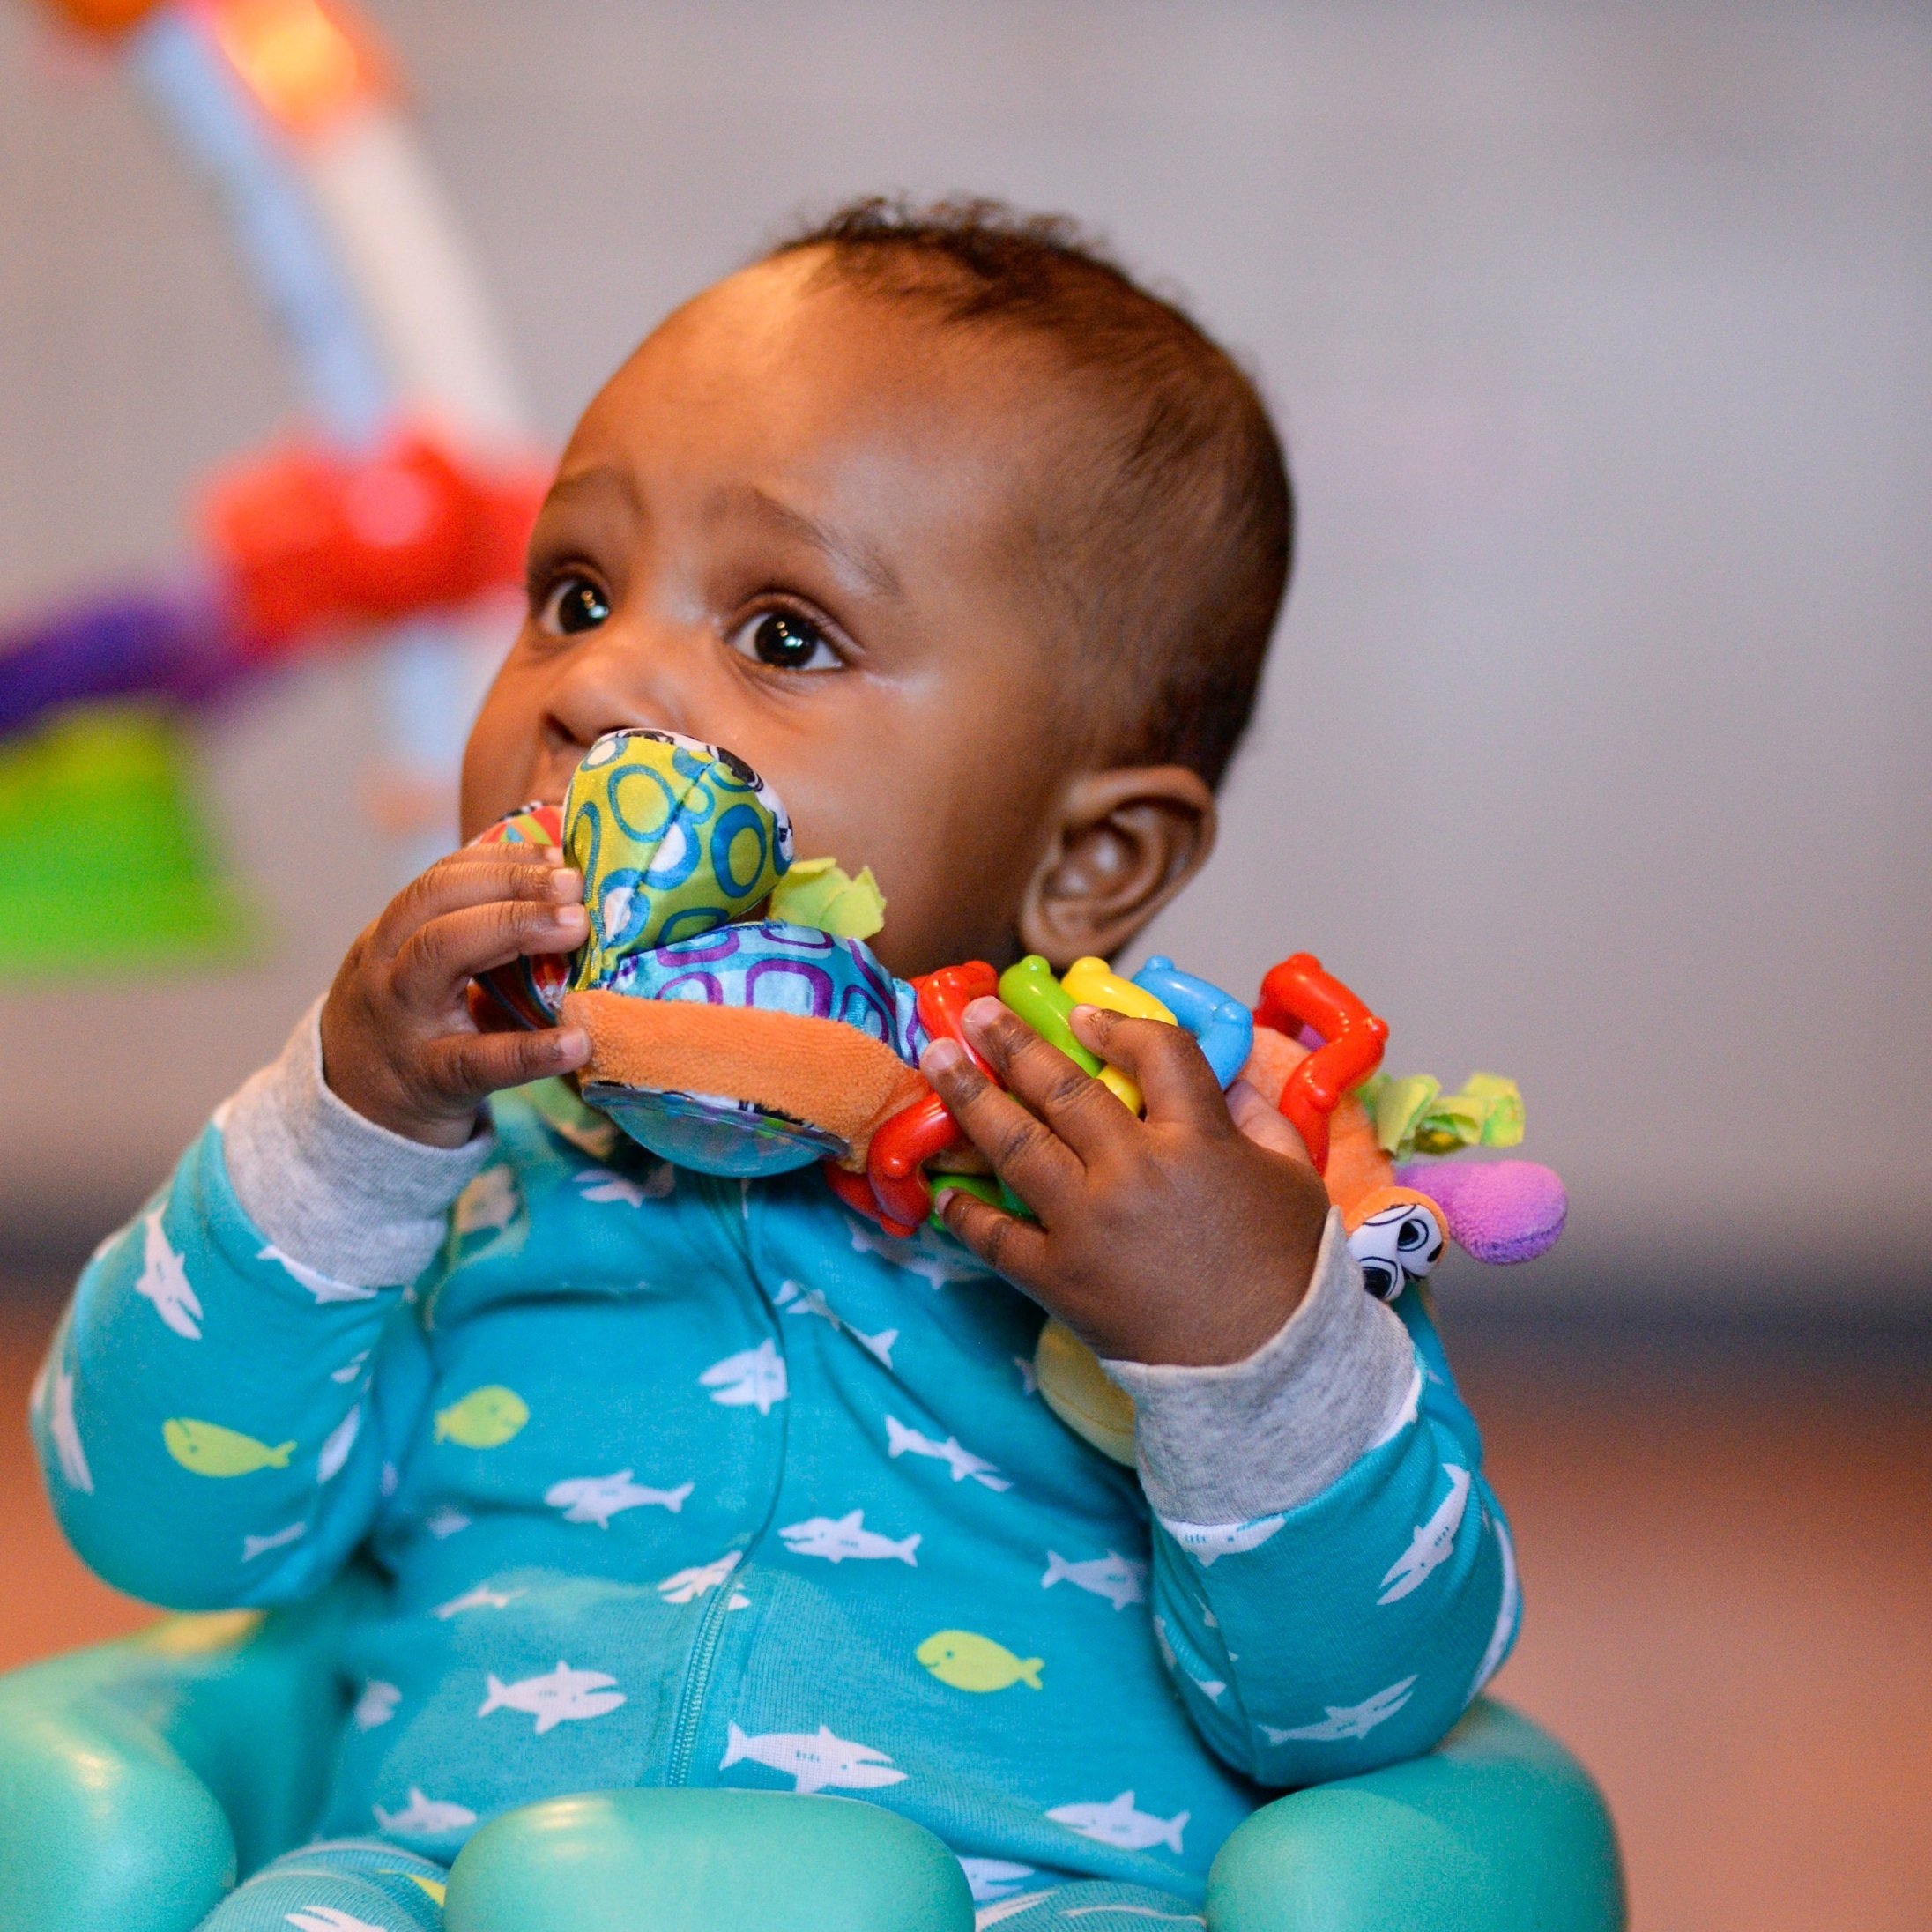 Infant care - At Heritage Preschools, we believe that the path to excellent infant care requires a balanced focus on both development and age. Each room has been thoughtfully designed to ensure that individual infants both grow and thrive in an environment that feels like home.